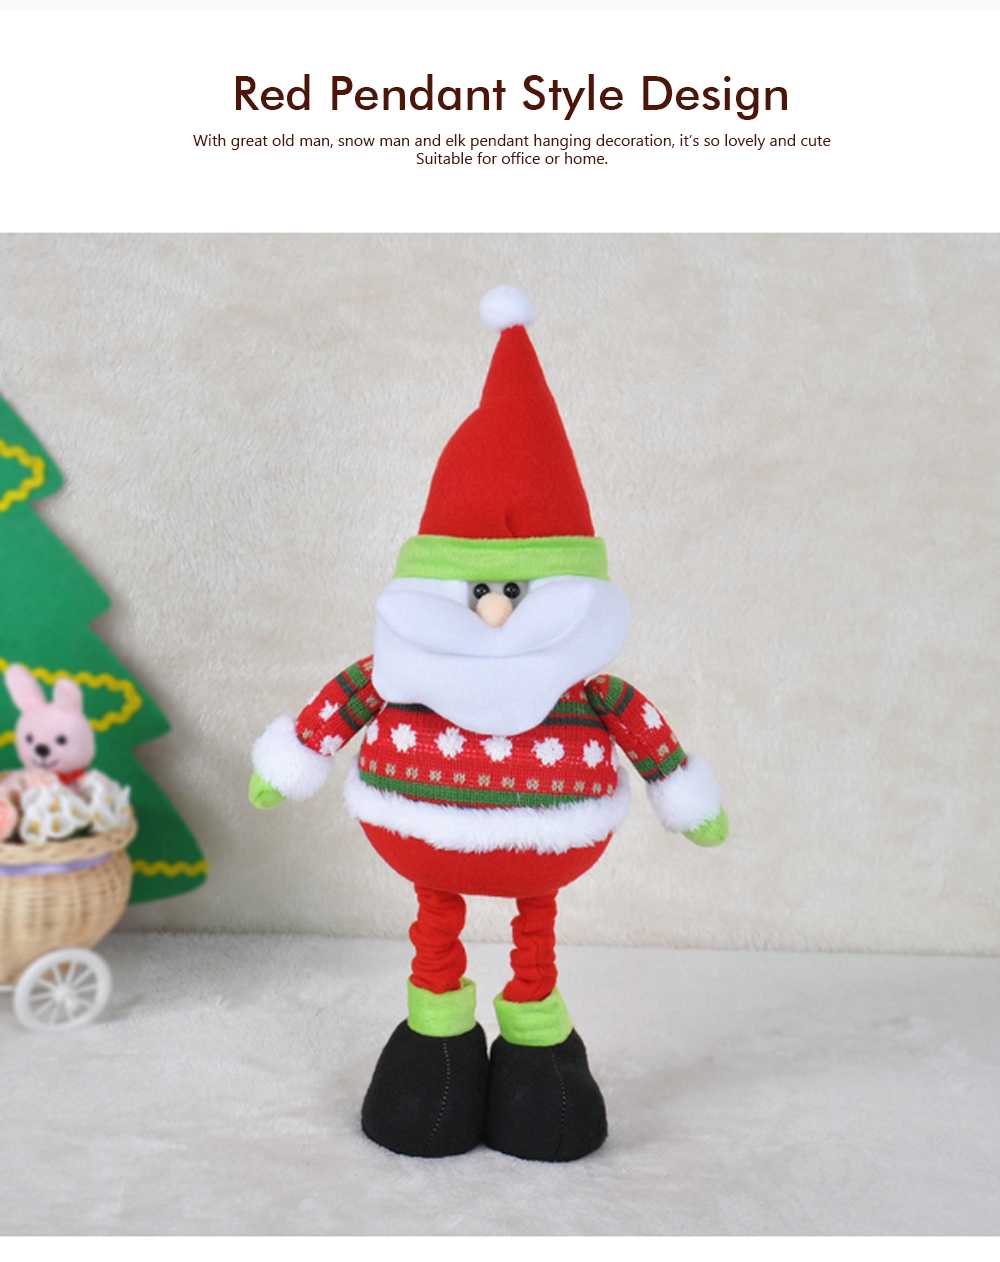 Standing Telescopic Santa Snowman, Figurine Santa Claus Posing Christmas Doll for Gifts 1